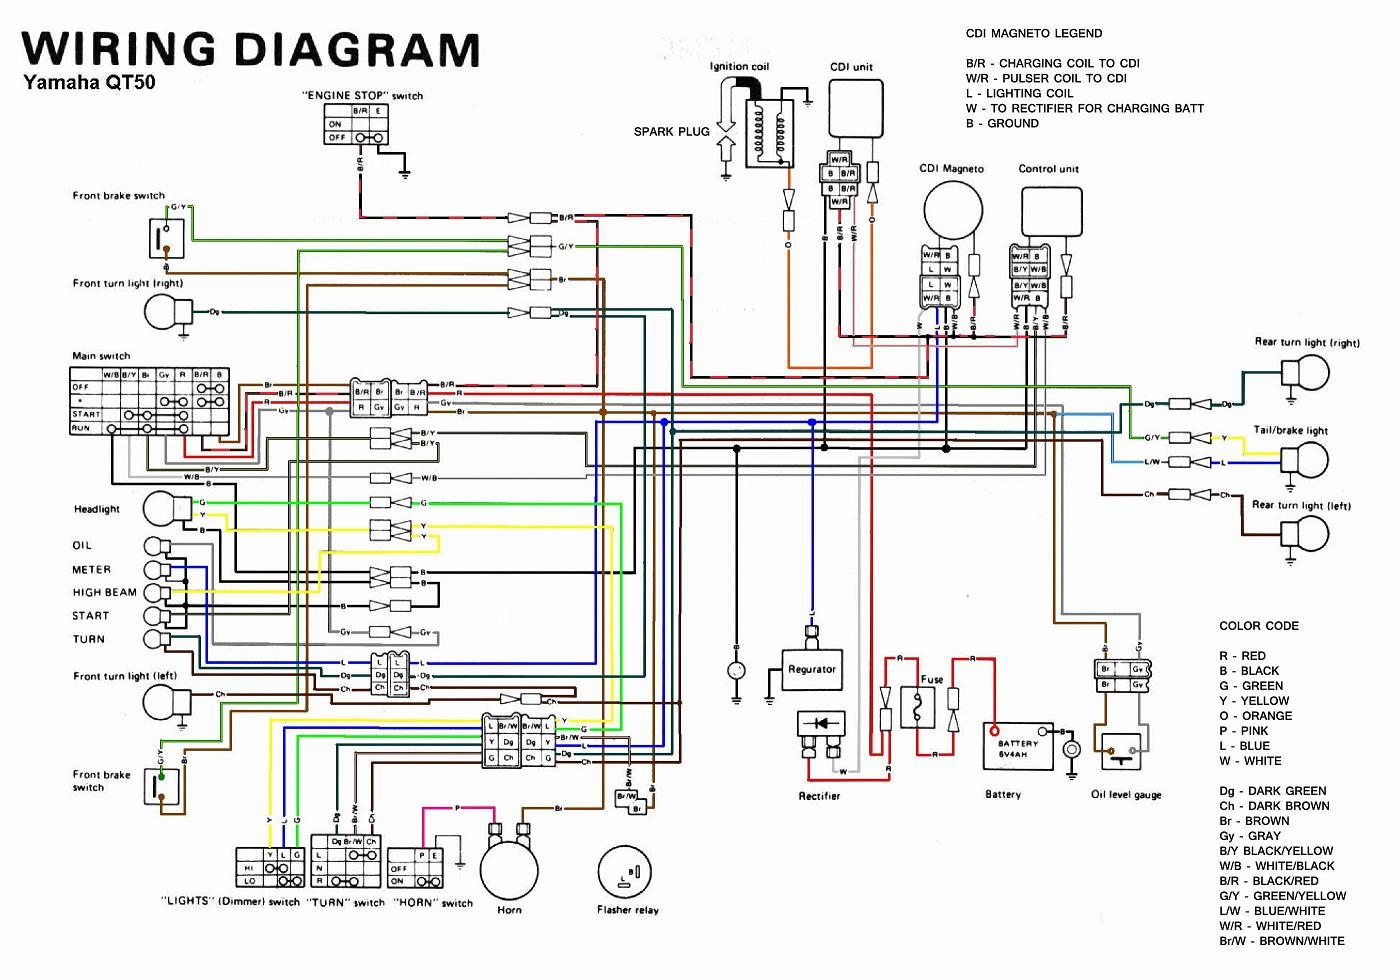 small resolution of qt50 wiring diagram electrical wiring diagrams xs650 wiring diagram for 1979 1979 yamaha wiring diagram